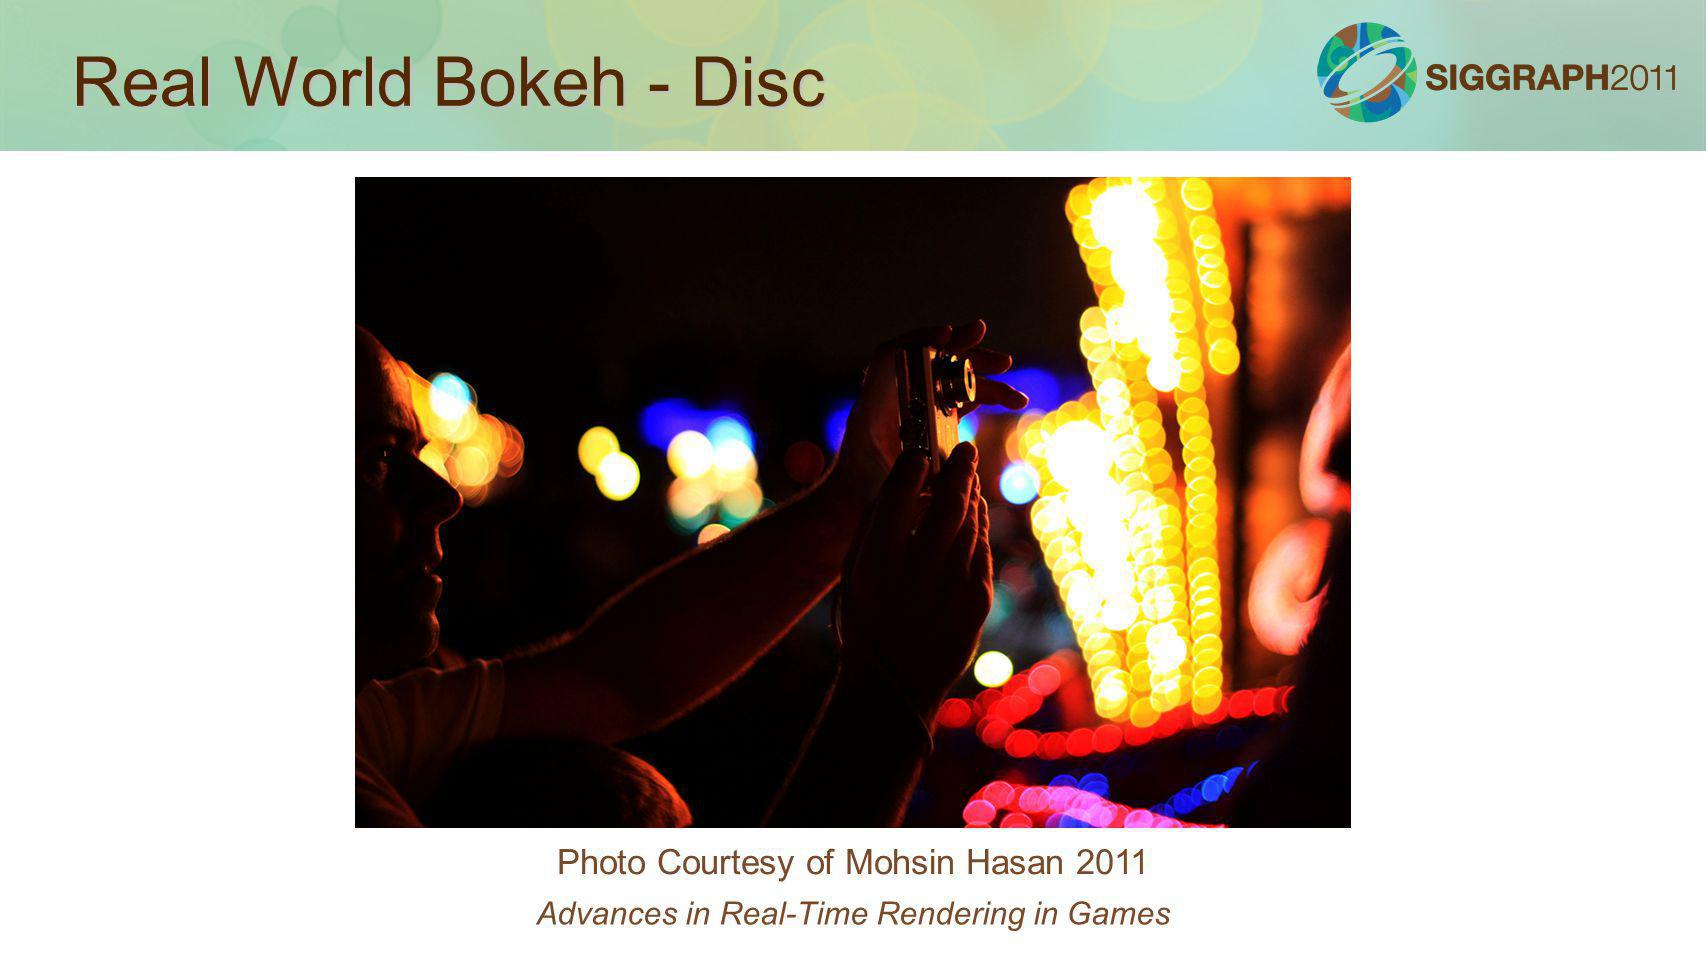 Real World Bokeh - Disc Photo Courtesy of Mohsin Hasan 2011 Advances in Real-Time Rendering in Games